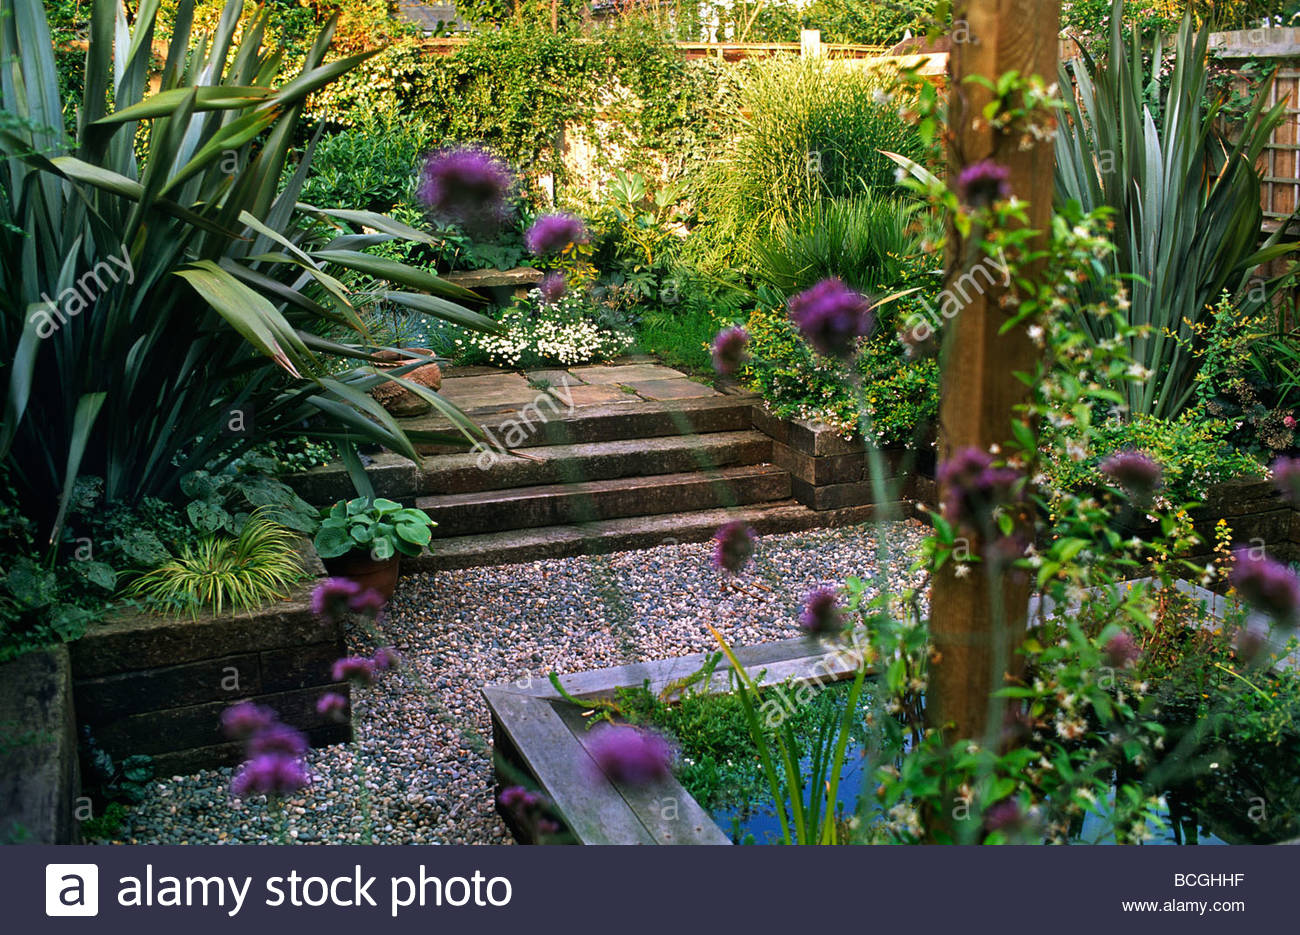 Patio Garden With Raised Bed Pool Gravel Paths Architectural Planting  Railway Sleeper Steps